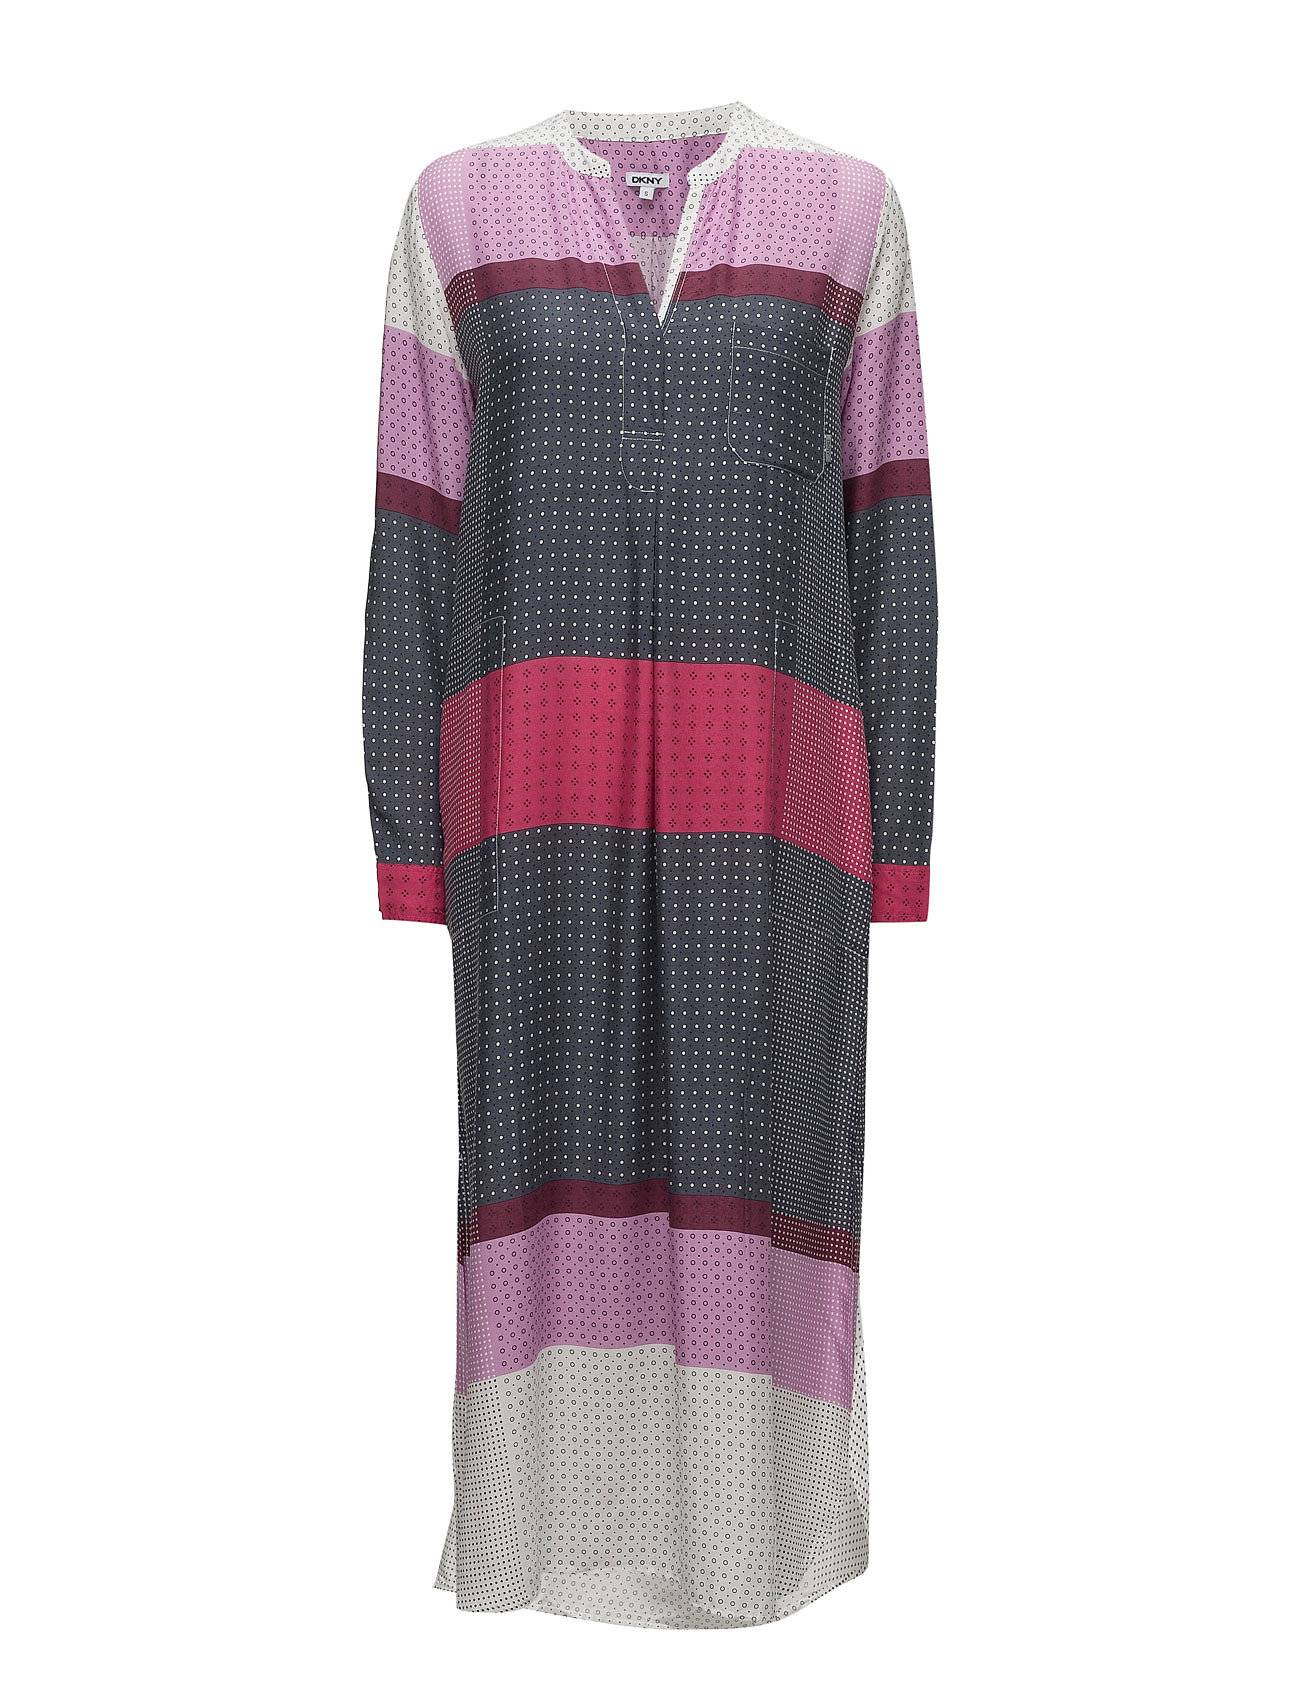 DKNY Homewear Dkny Madison Avenue Favorites Maxi Dress